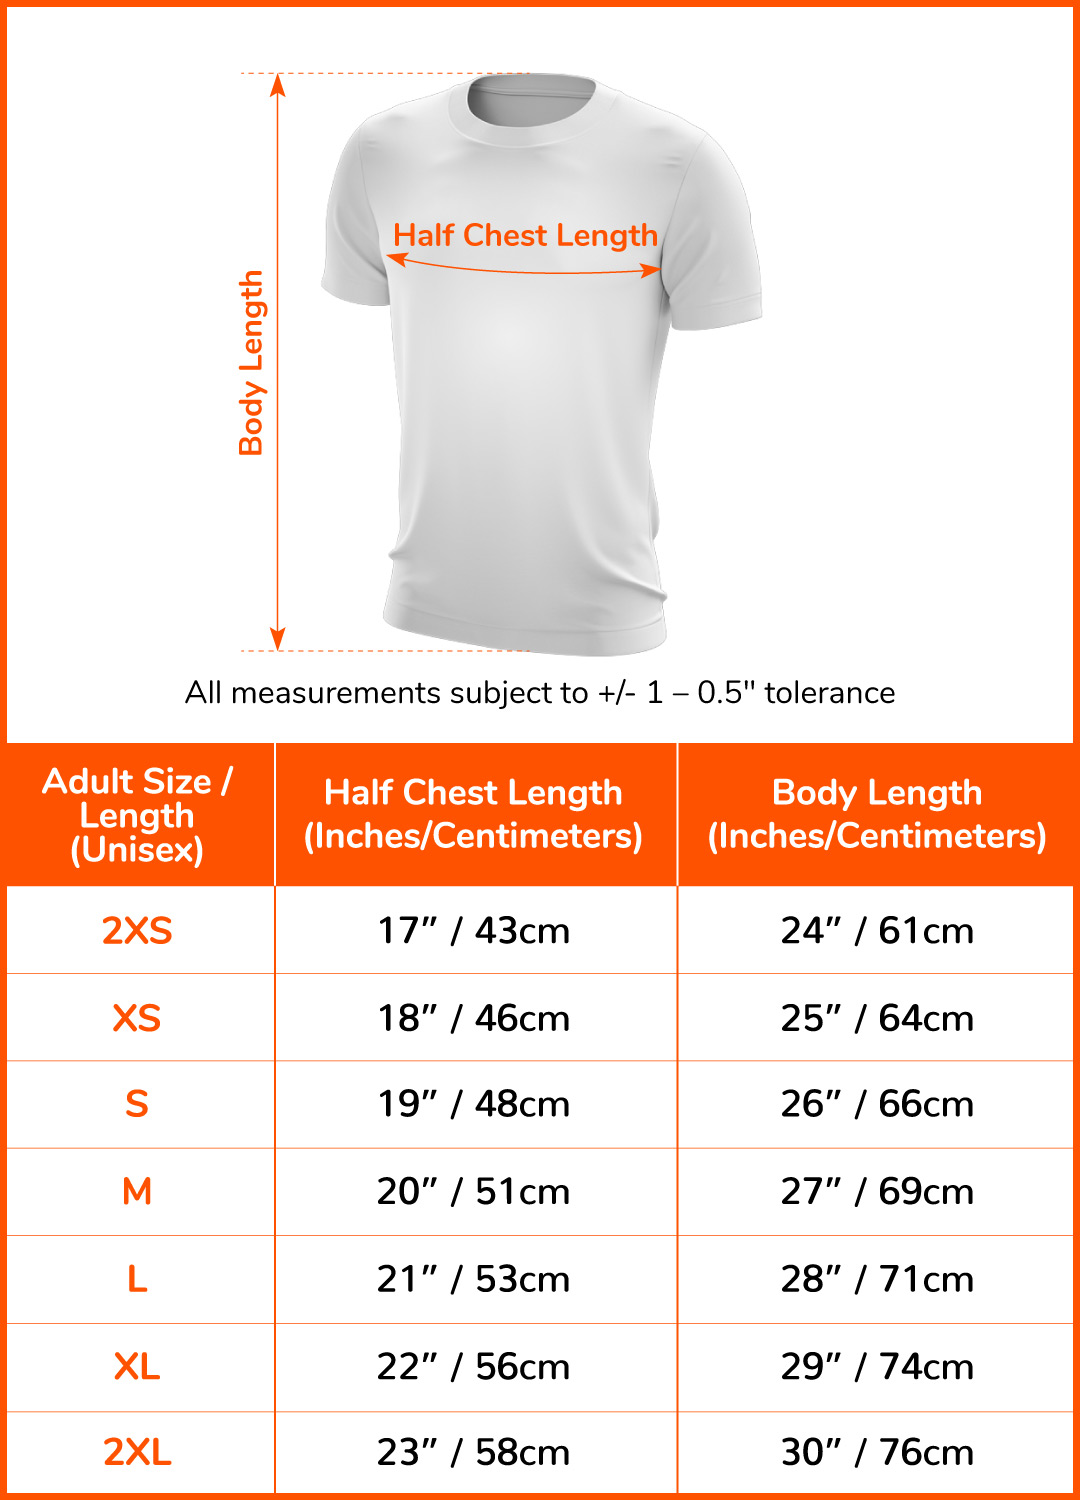 Finisher T-Shirt - 55km#size-chart